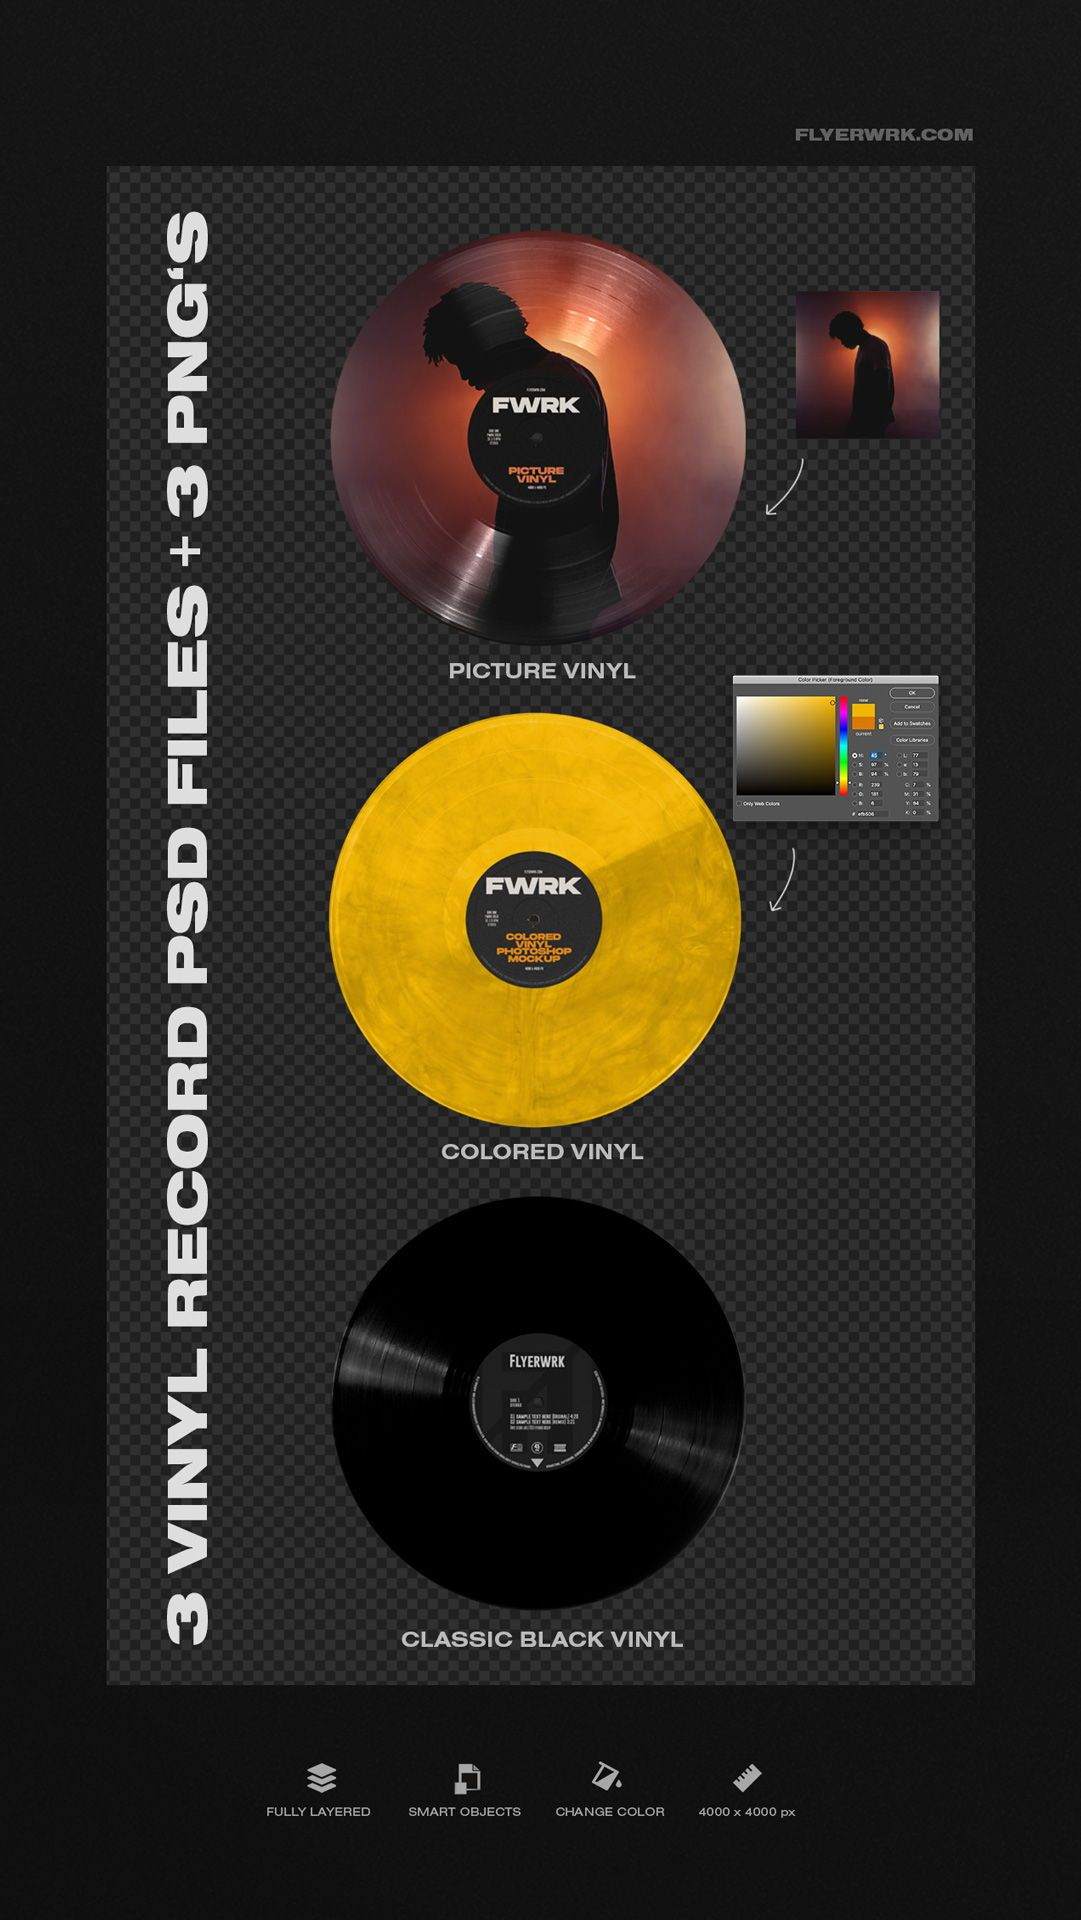 Retro Vinyl Record Mockup In 2020 Album Cover Design Vinyl Record Artwork Graphic Design Resources